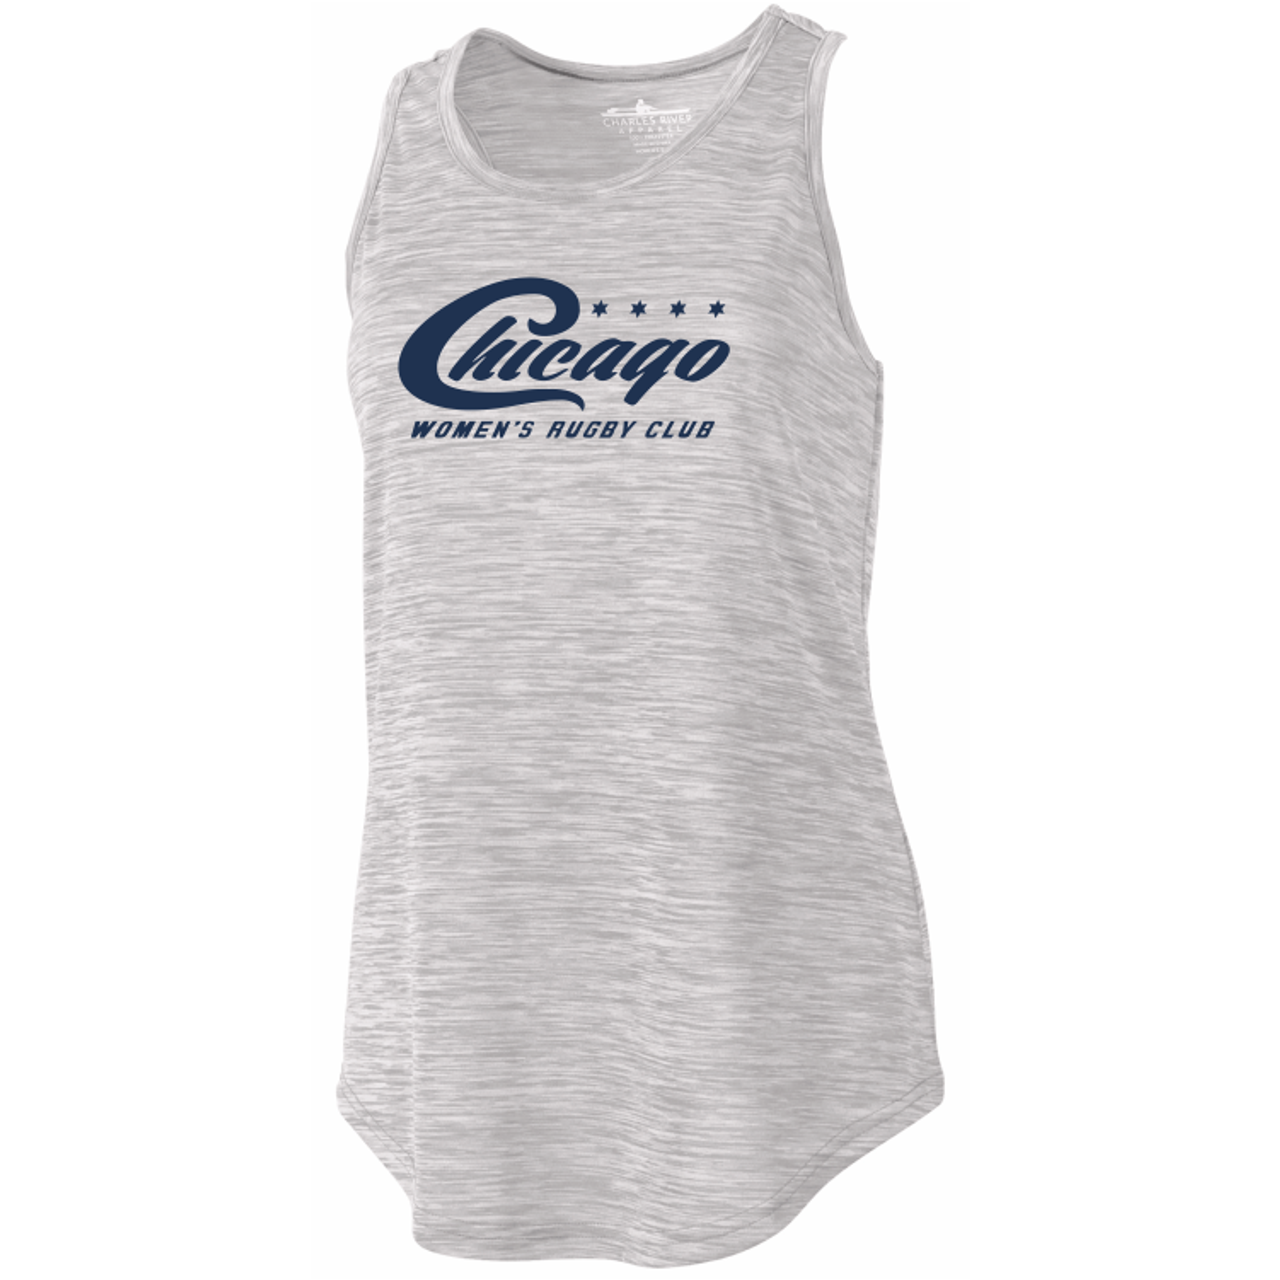 Chicago WRFC Space Dye Ladies-Cut Tank